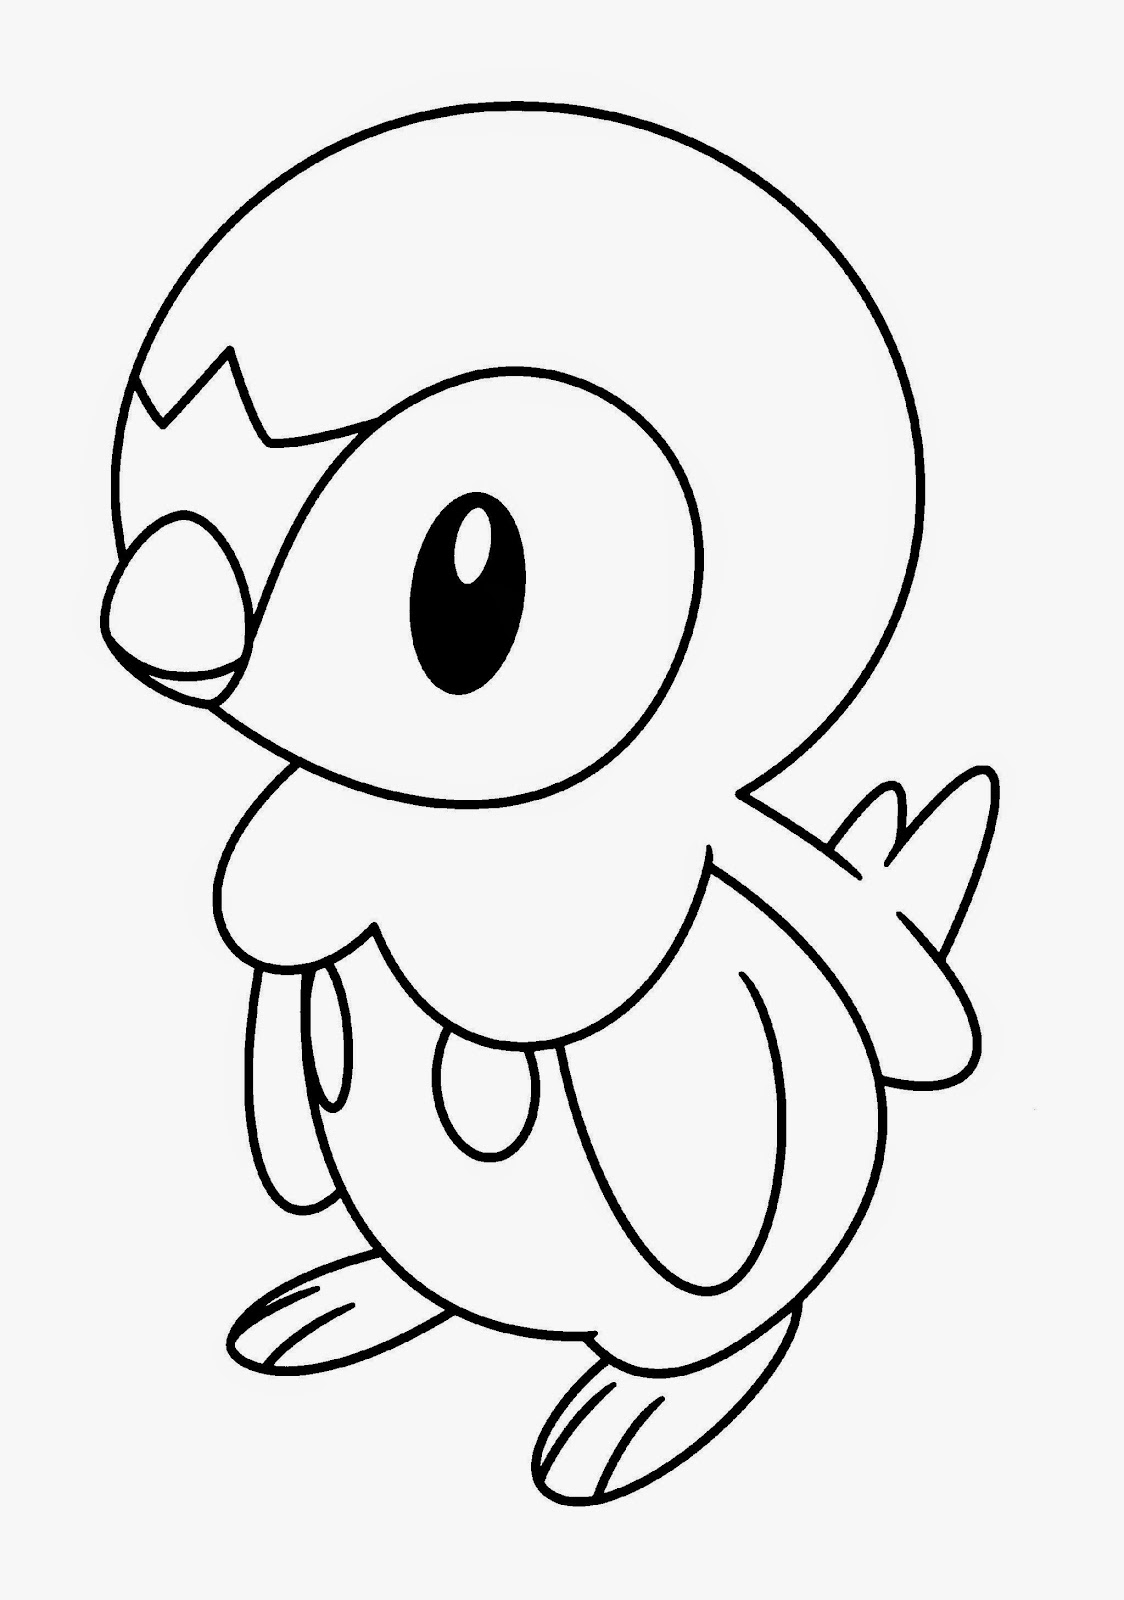 Pokemon pictures to color free coloring pictures for Pokemon online coloring pages